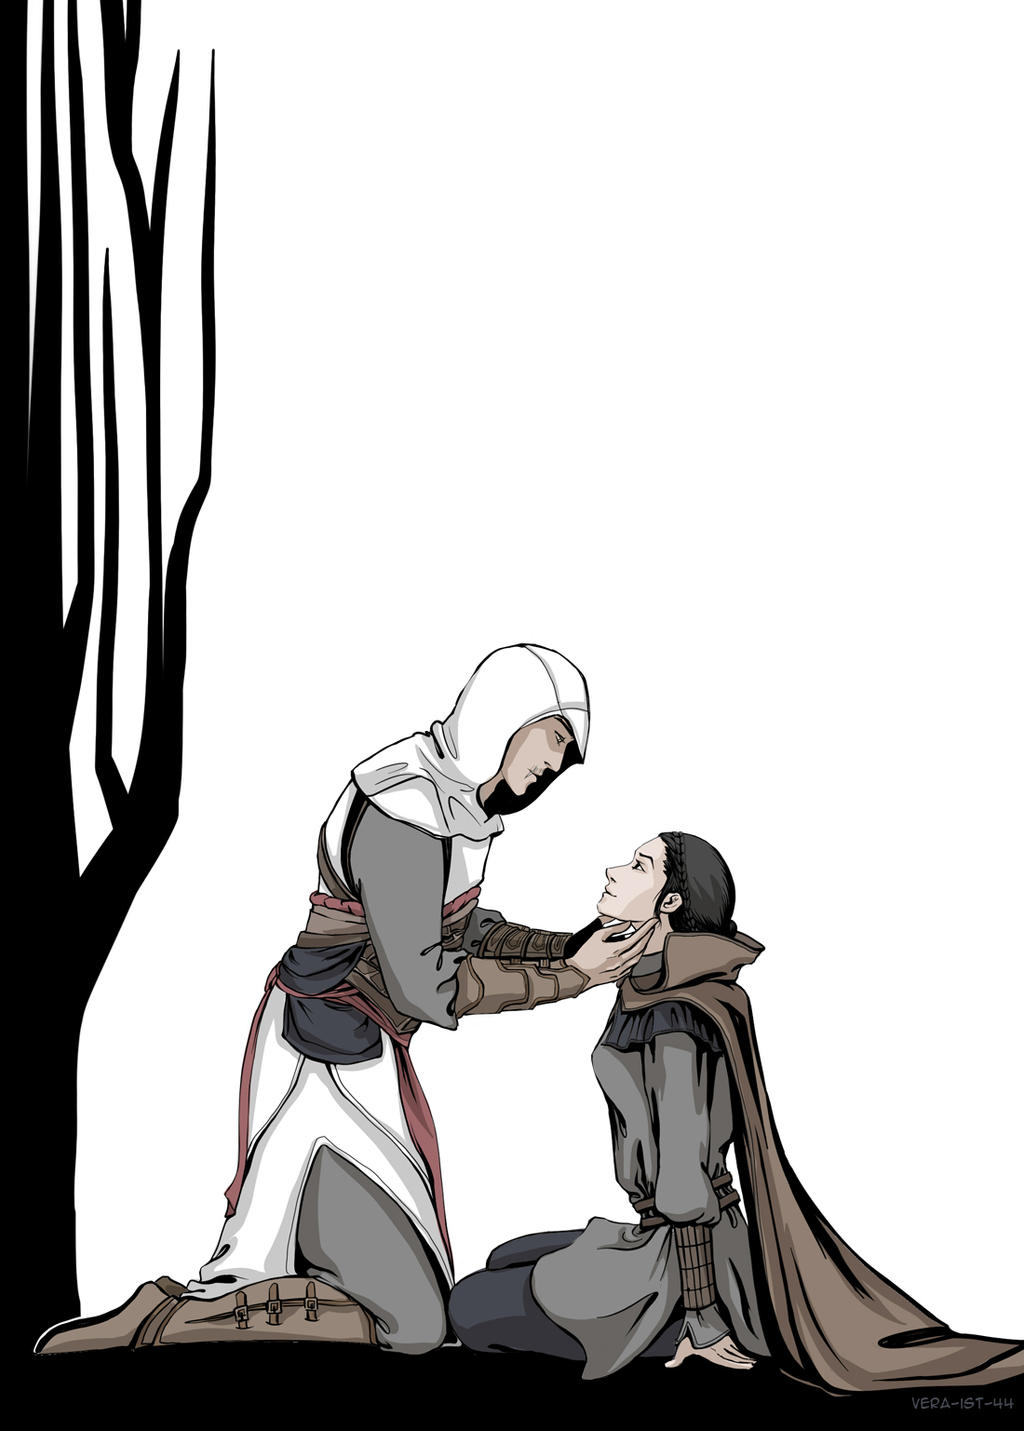 altair and maria relationship